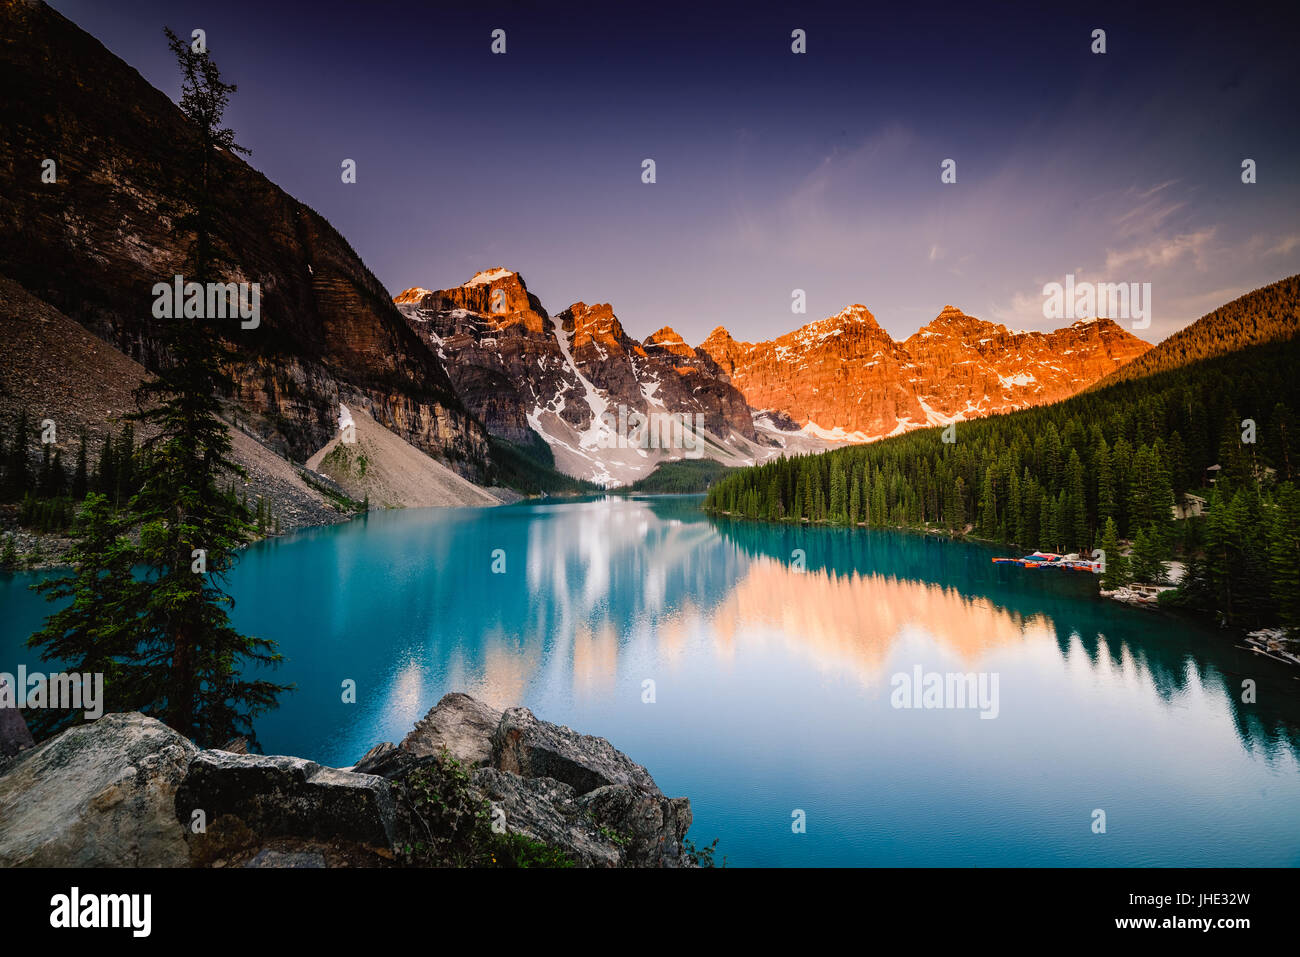 Il Moraine Lake a sunrise, banff, Canada Immagini Stock